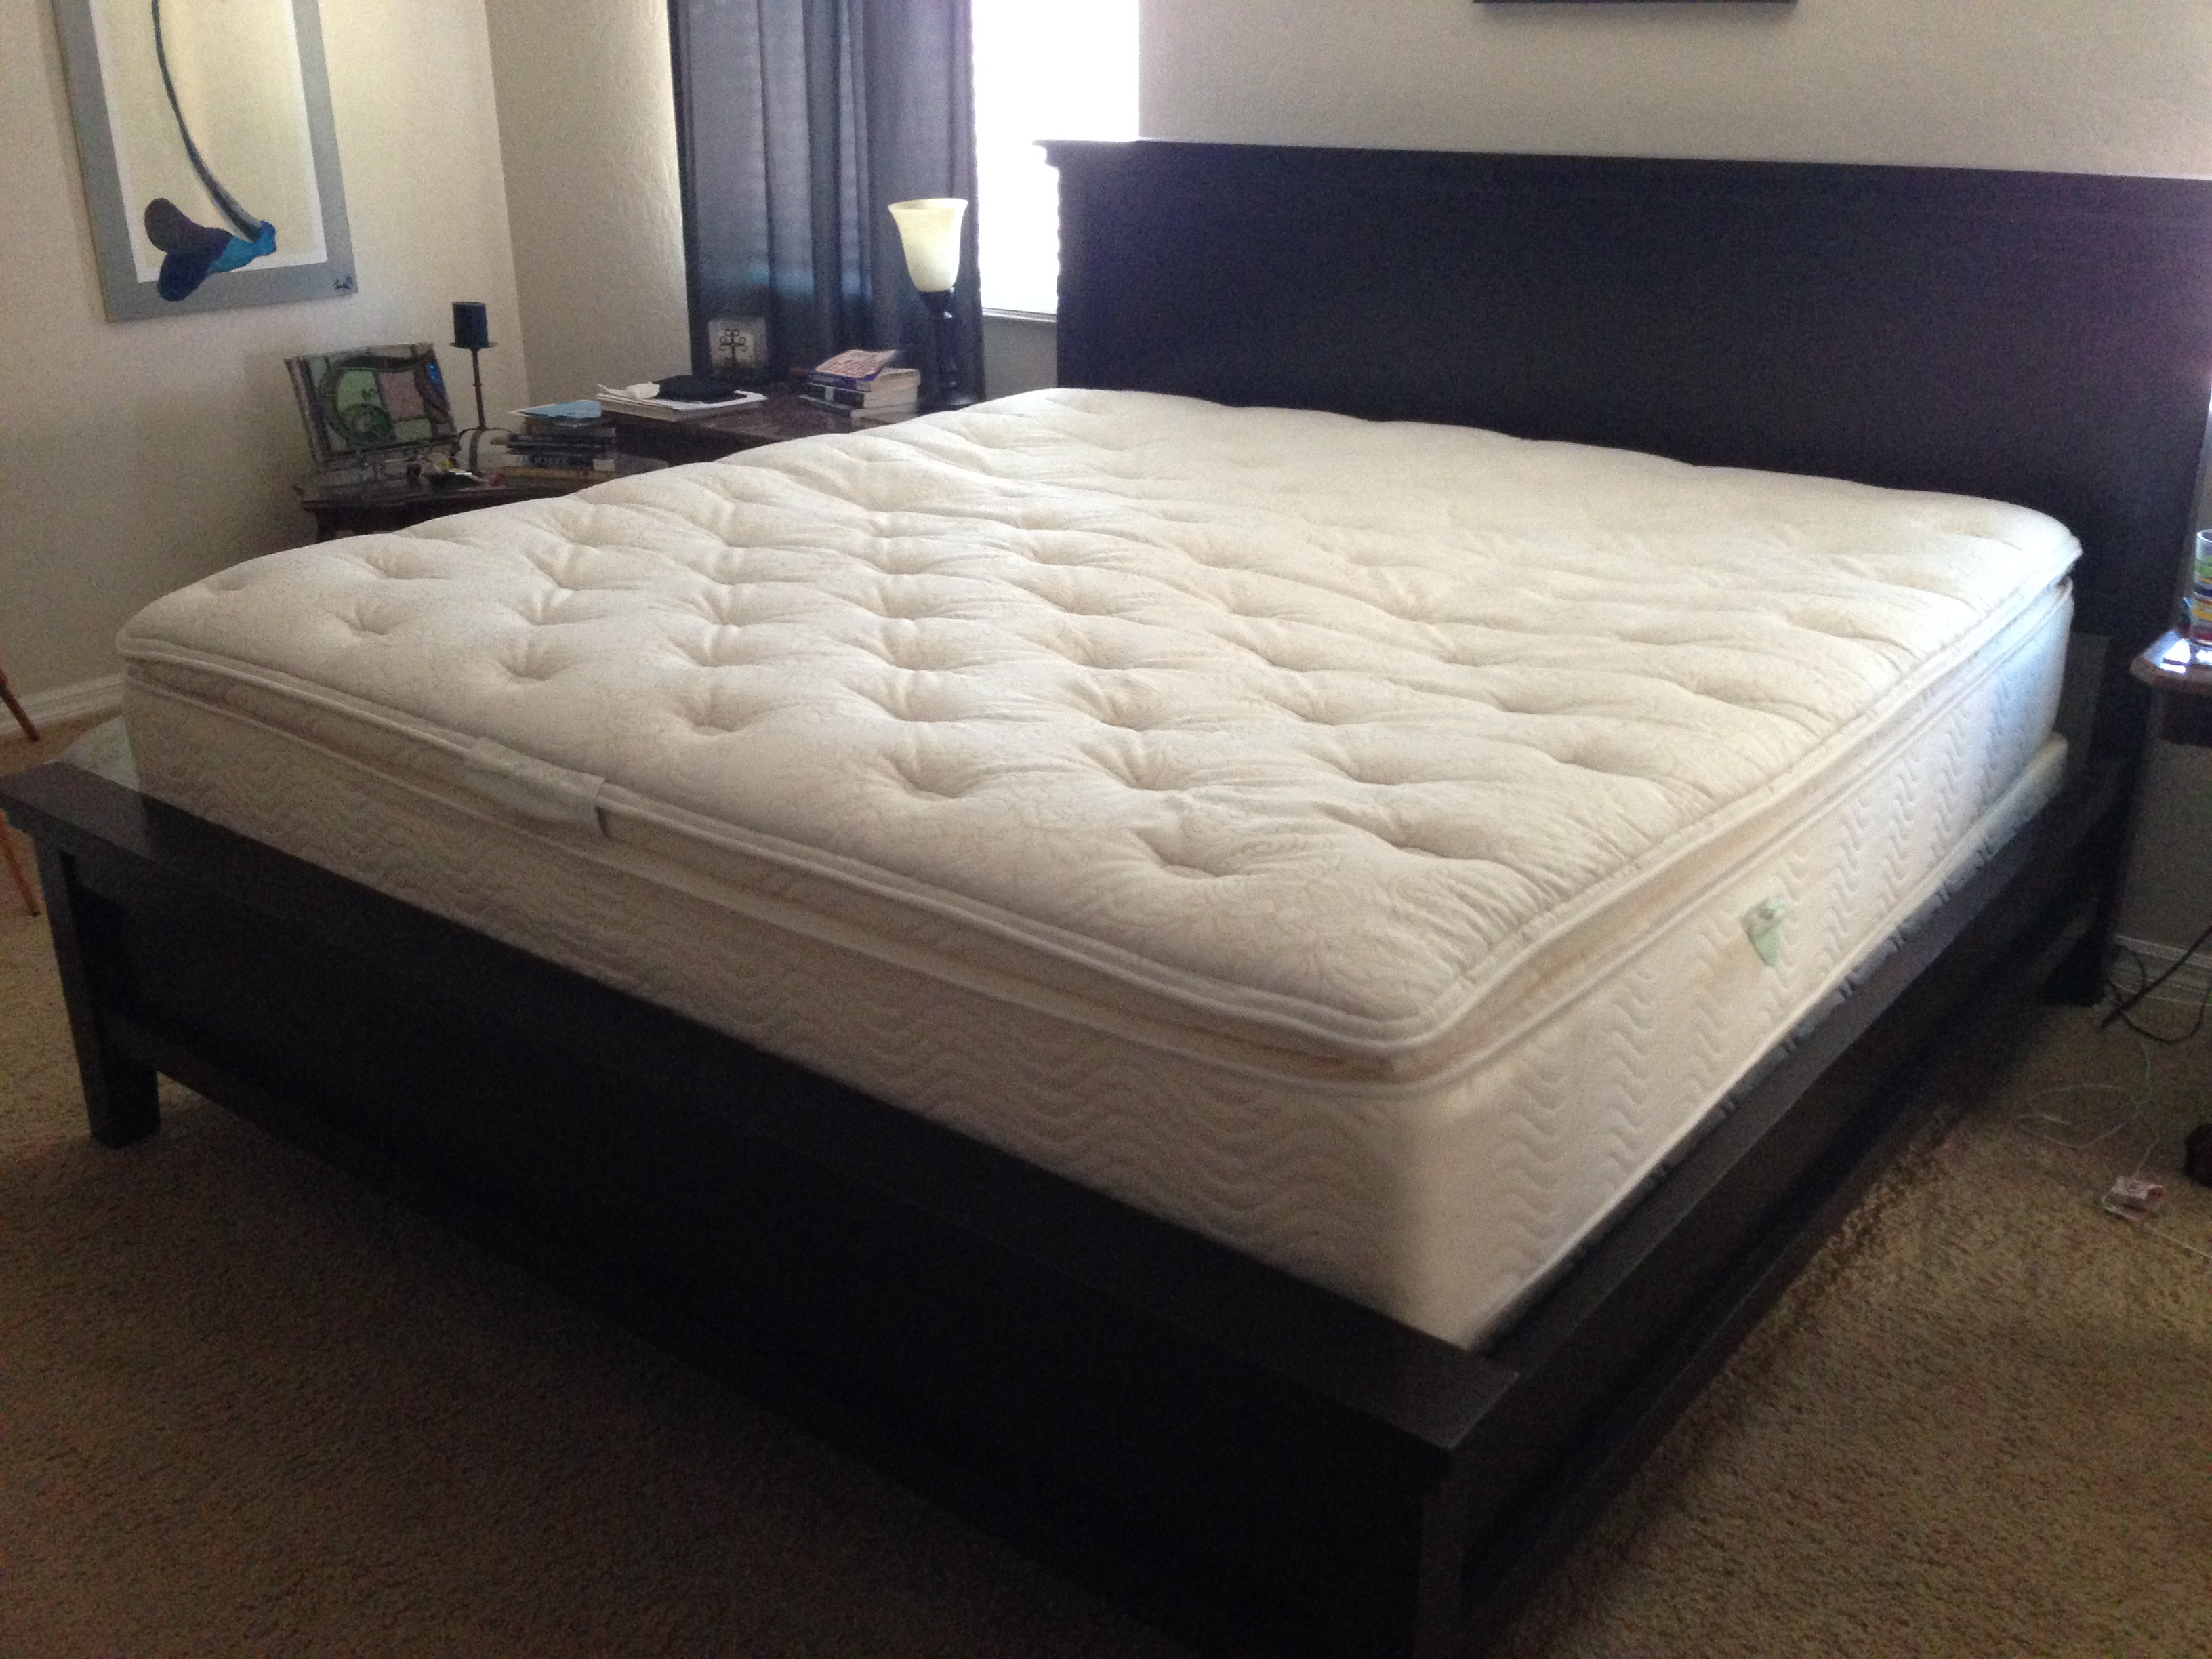 simmons beauty rest spring mattress - Memory Foam Mattress